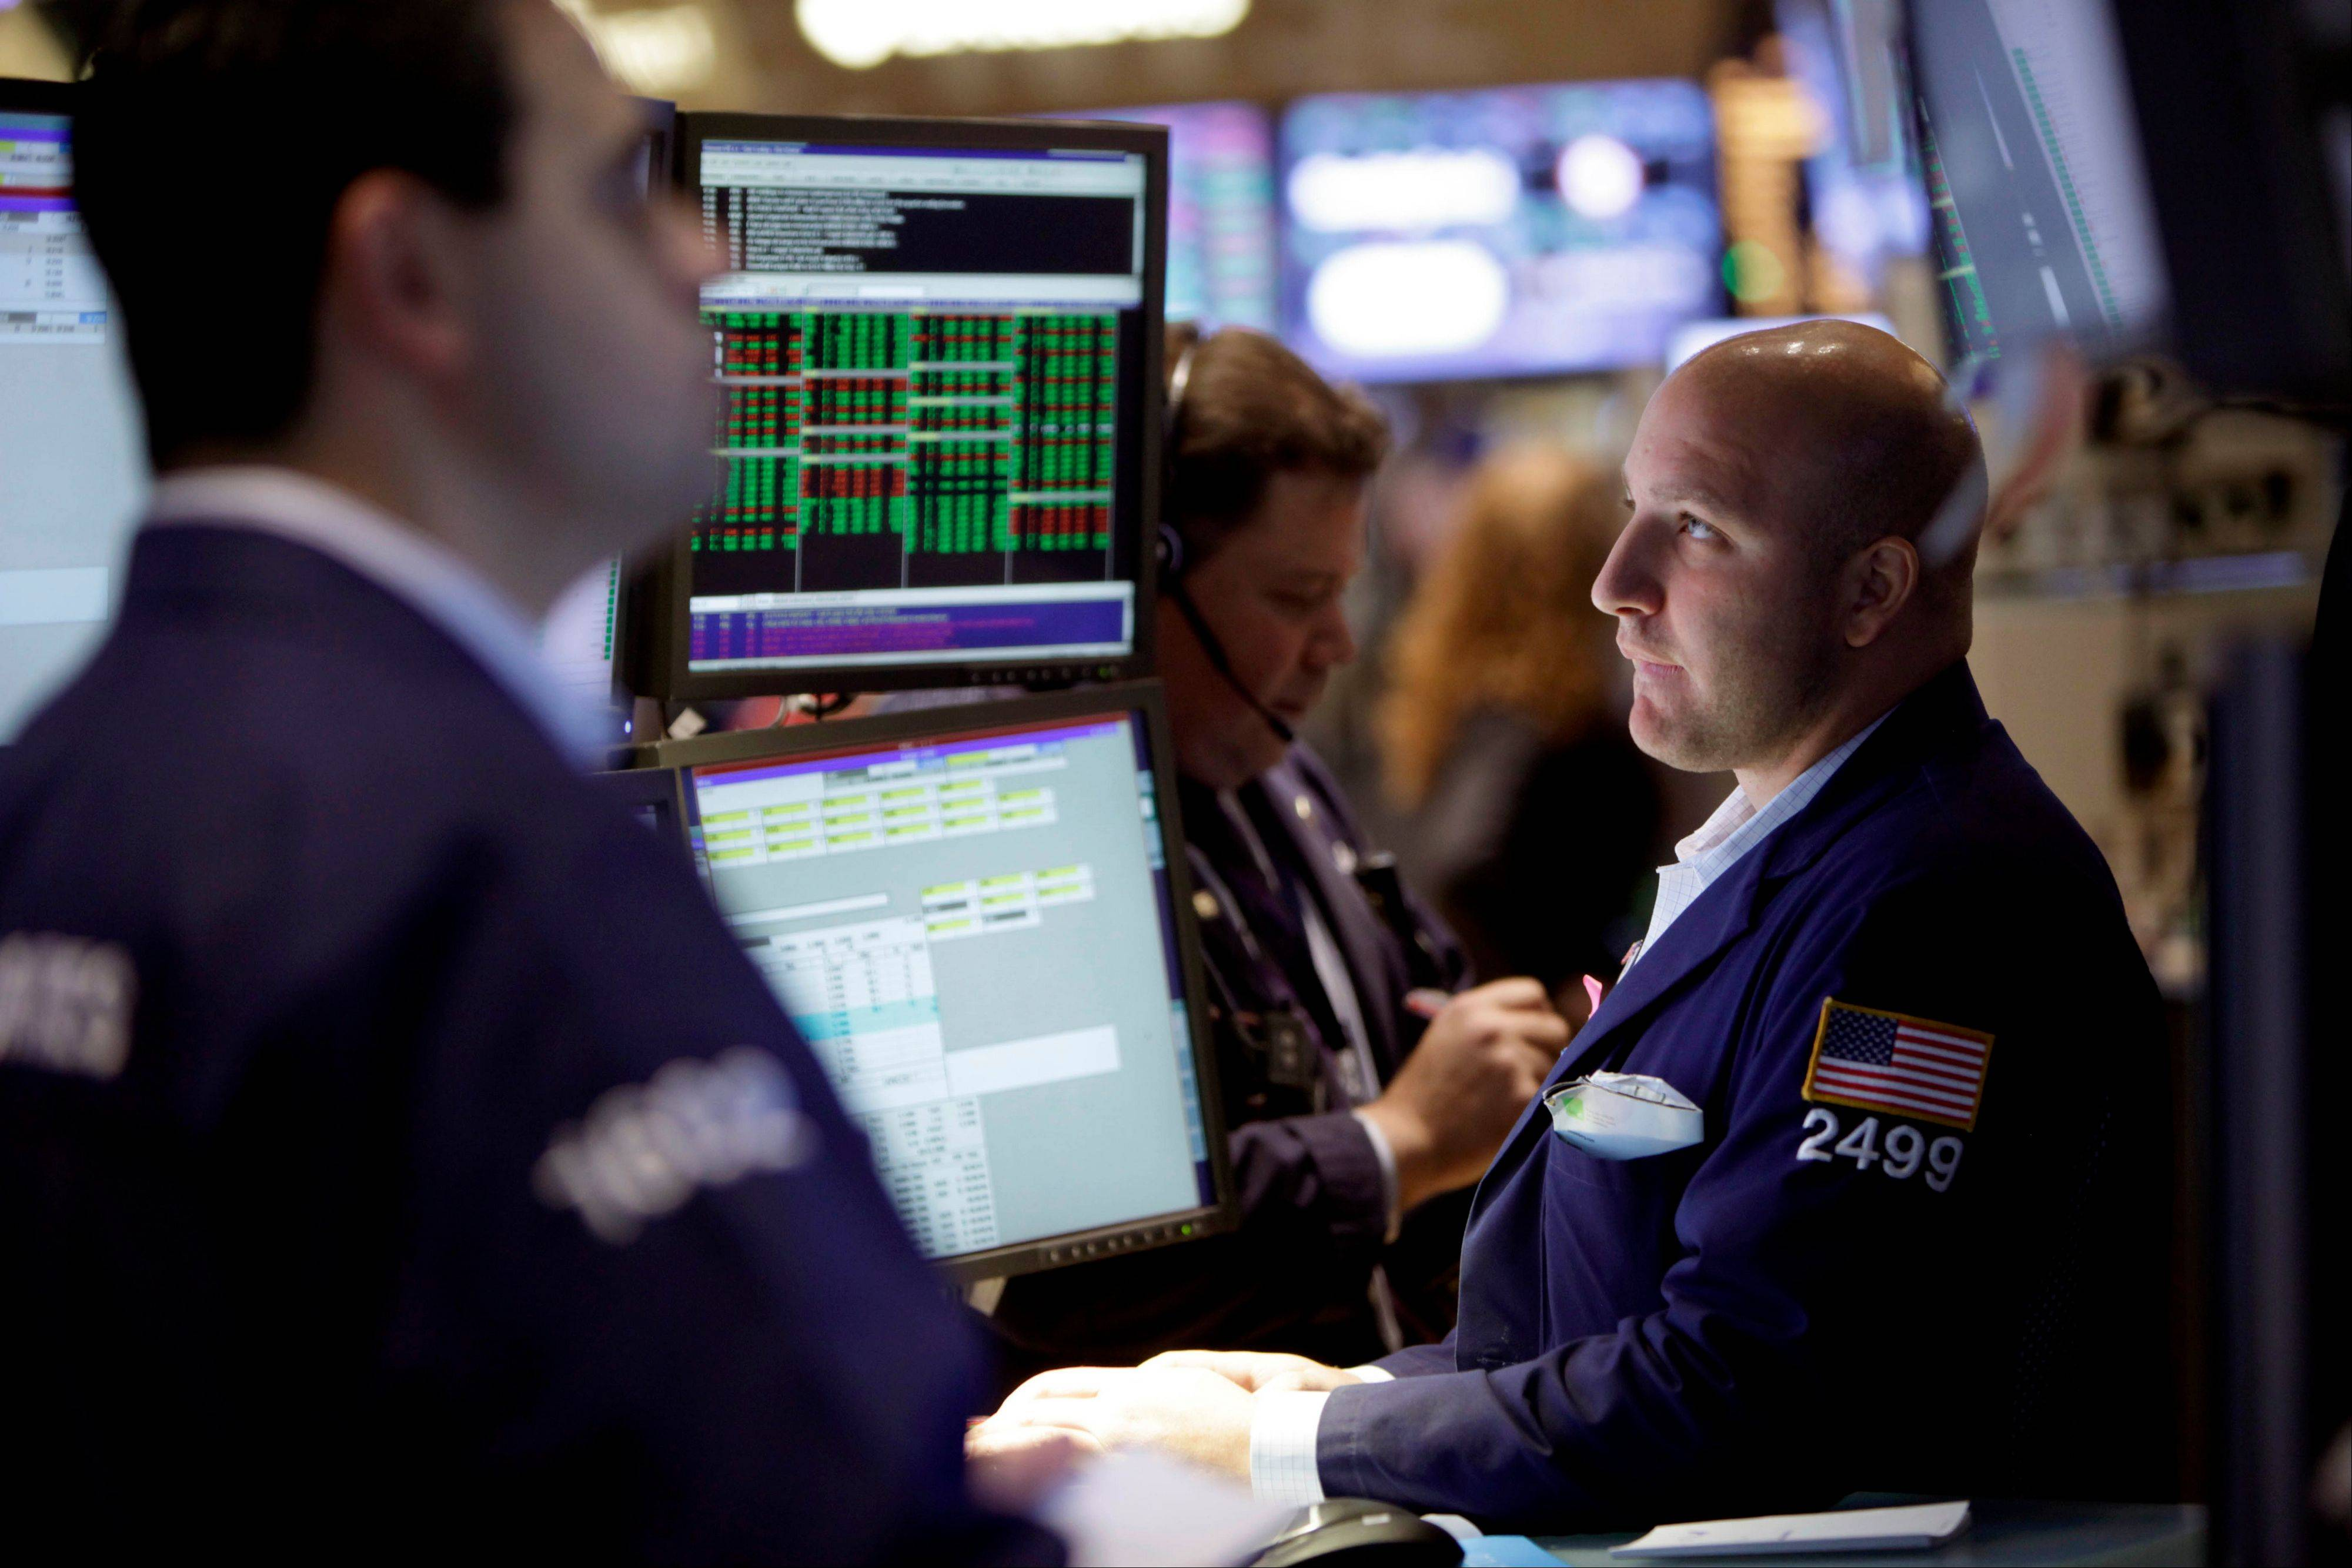 U.S. stocks fell, following a two-week advance for the Standard & Poor's 500 Index, as an unexpected contraction in manufacturing spurred concern about the potential economic toll from the so-called fiscal cliff.